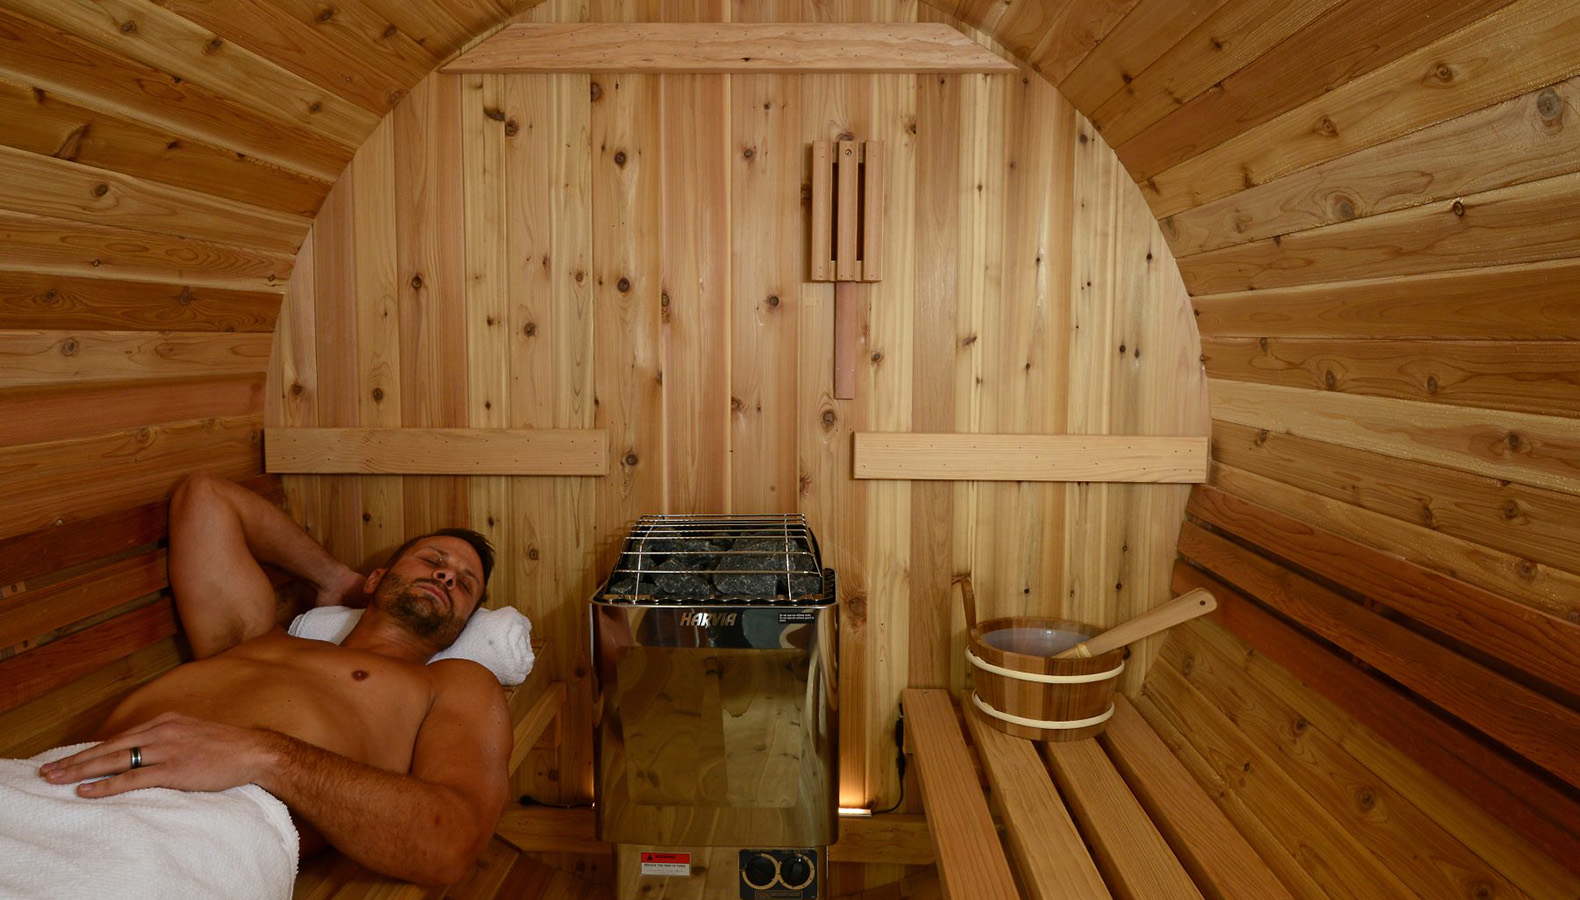 how to build a sauna in your house